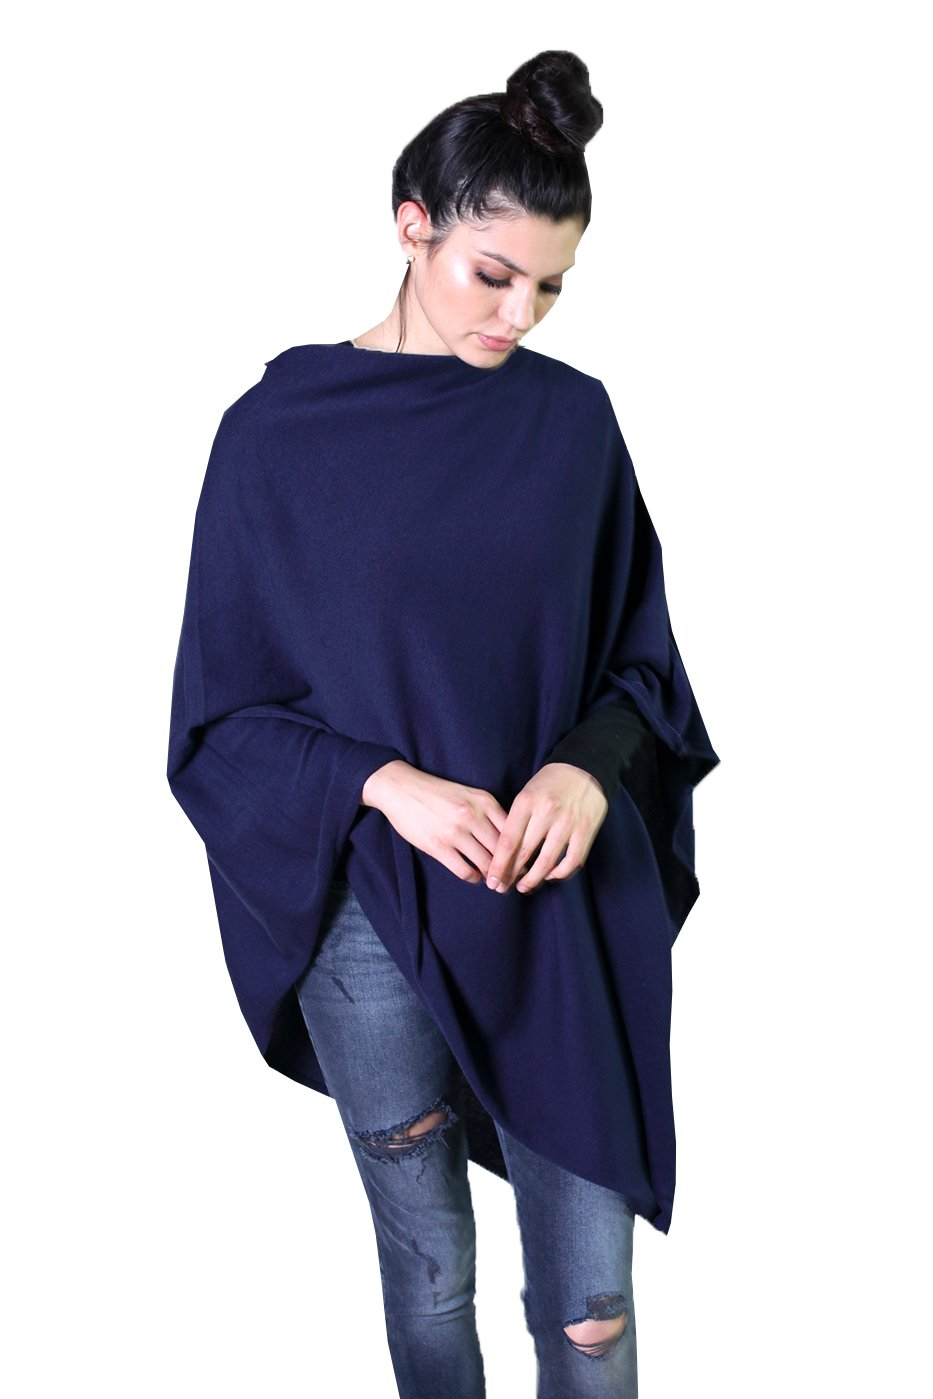 Viverano Organic Cotton 5-Way Solid Poncho Sweater Dress Topper, Soft & Lightweight (Navy Blue)